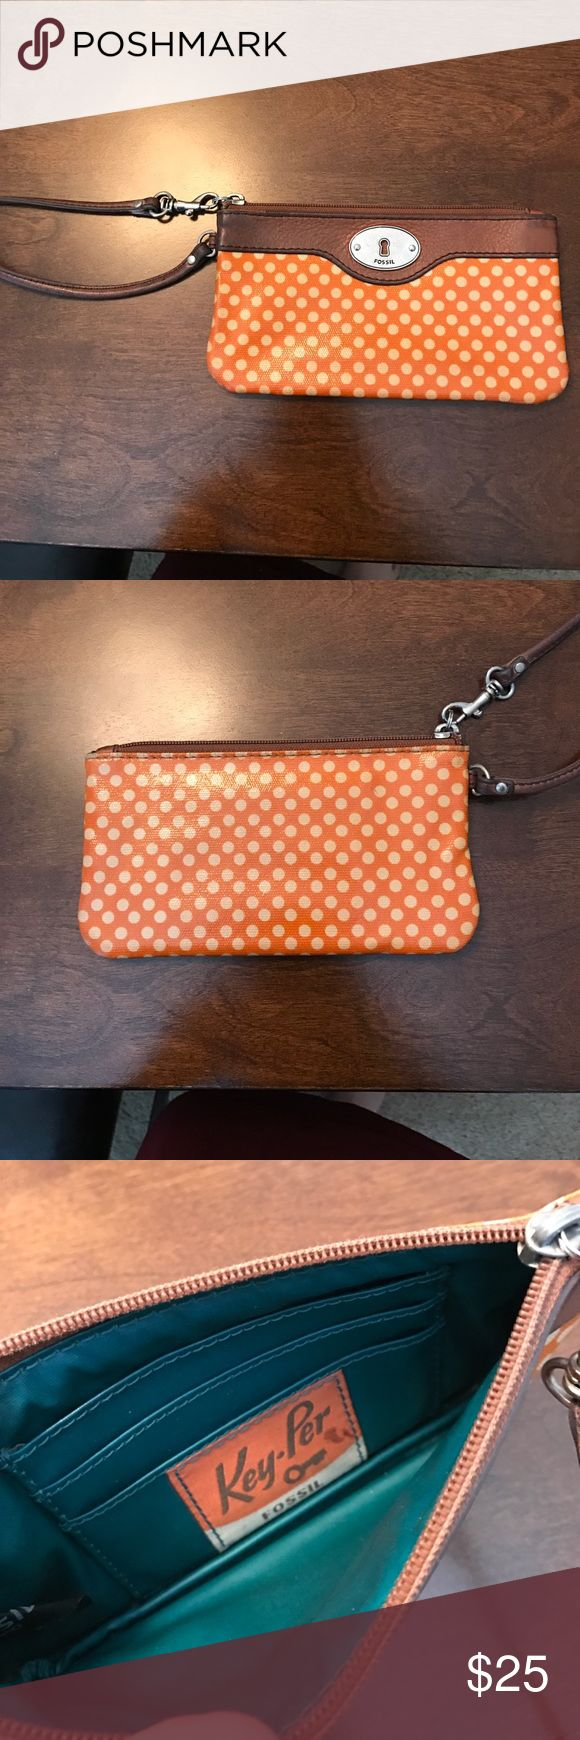 Fossil wallet wristlet Orange with cream polka dot wristlet! Interior holds 3 cards. Room for cash and phone. Great for a night out! Fossil Bags Clutches & Wristlets